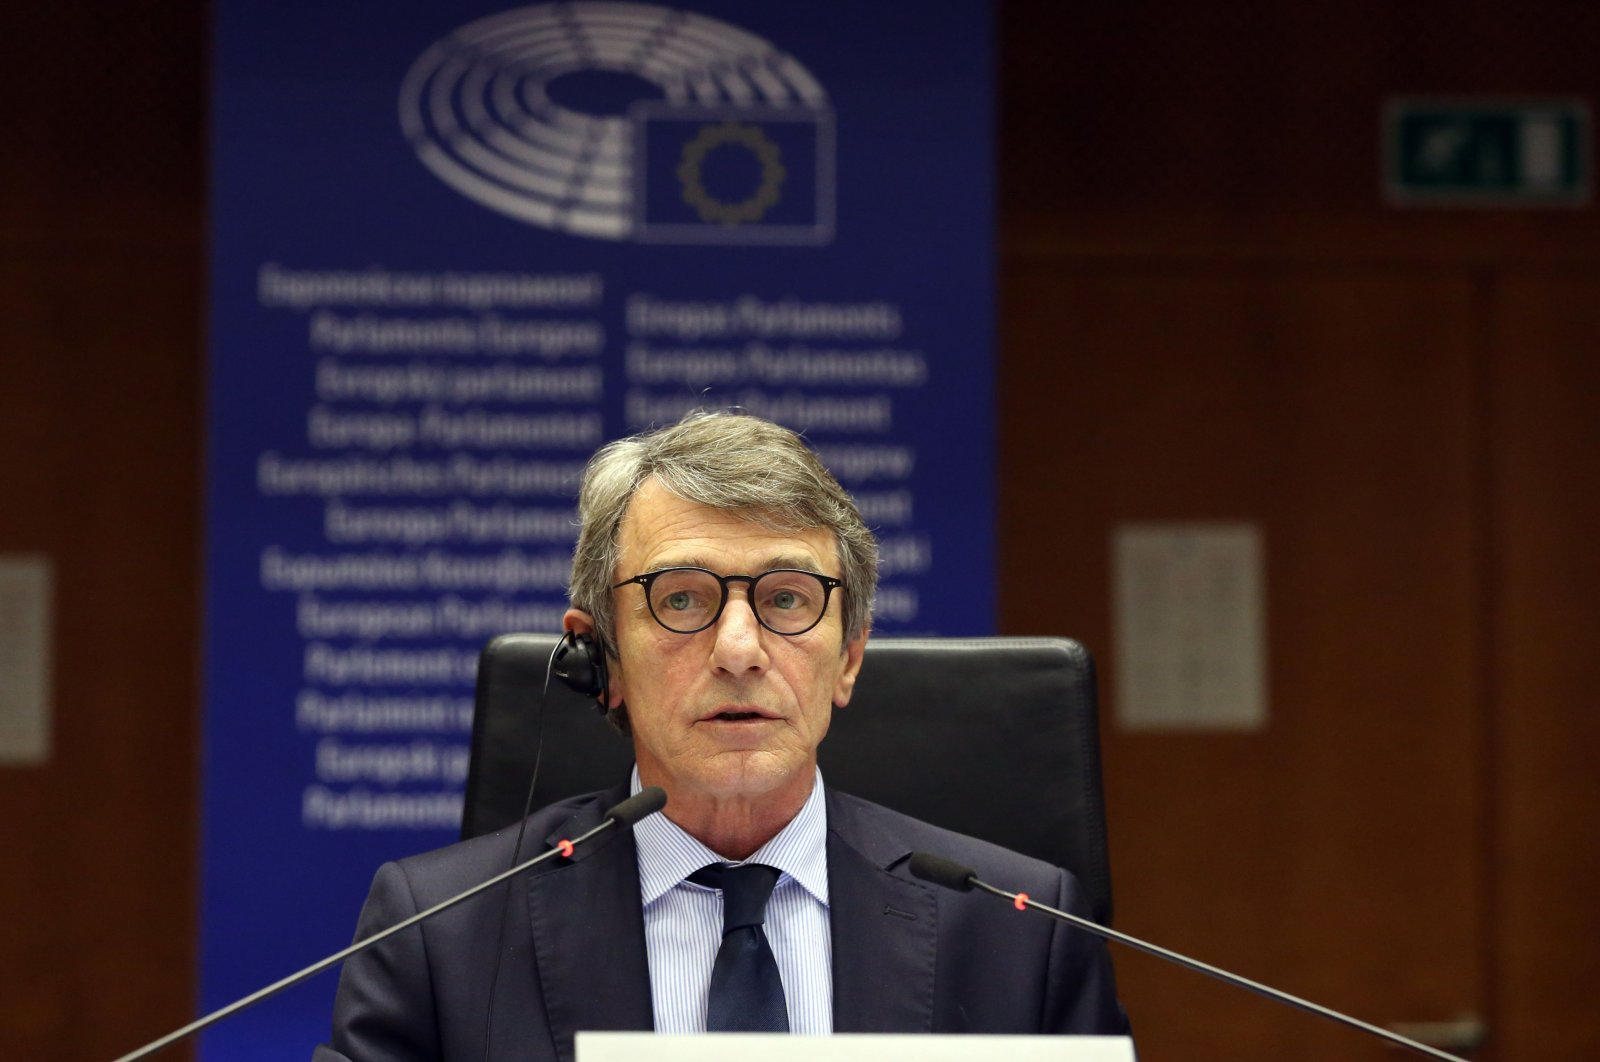 European Parliament (EP) President David Sassoli announces that the EP's plenary session, scheduled to last four days, has been reduced to a single day due to the spread of COVID-19, Brussels, March 9, 2020. (AFP Photo)